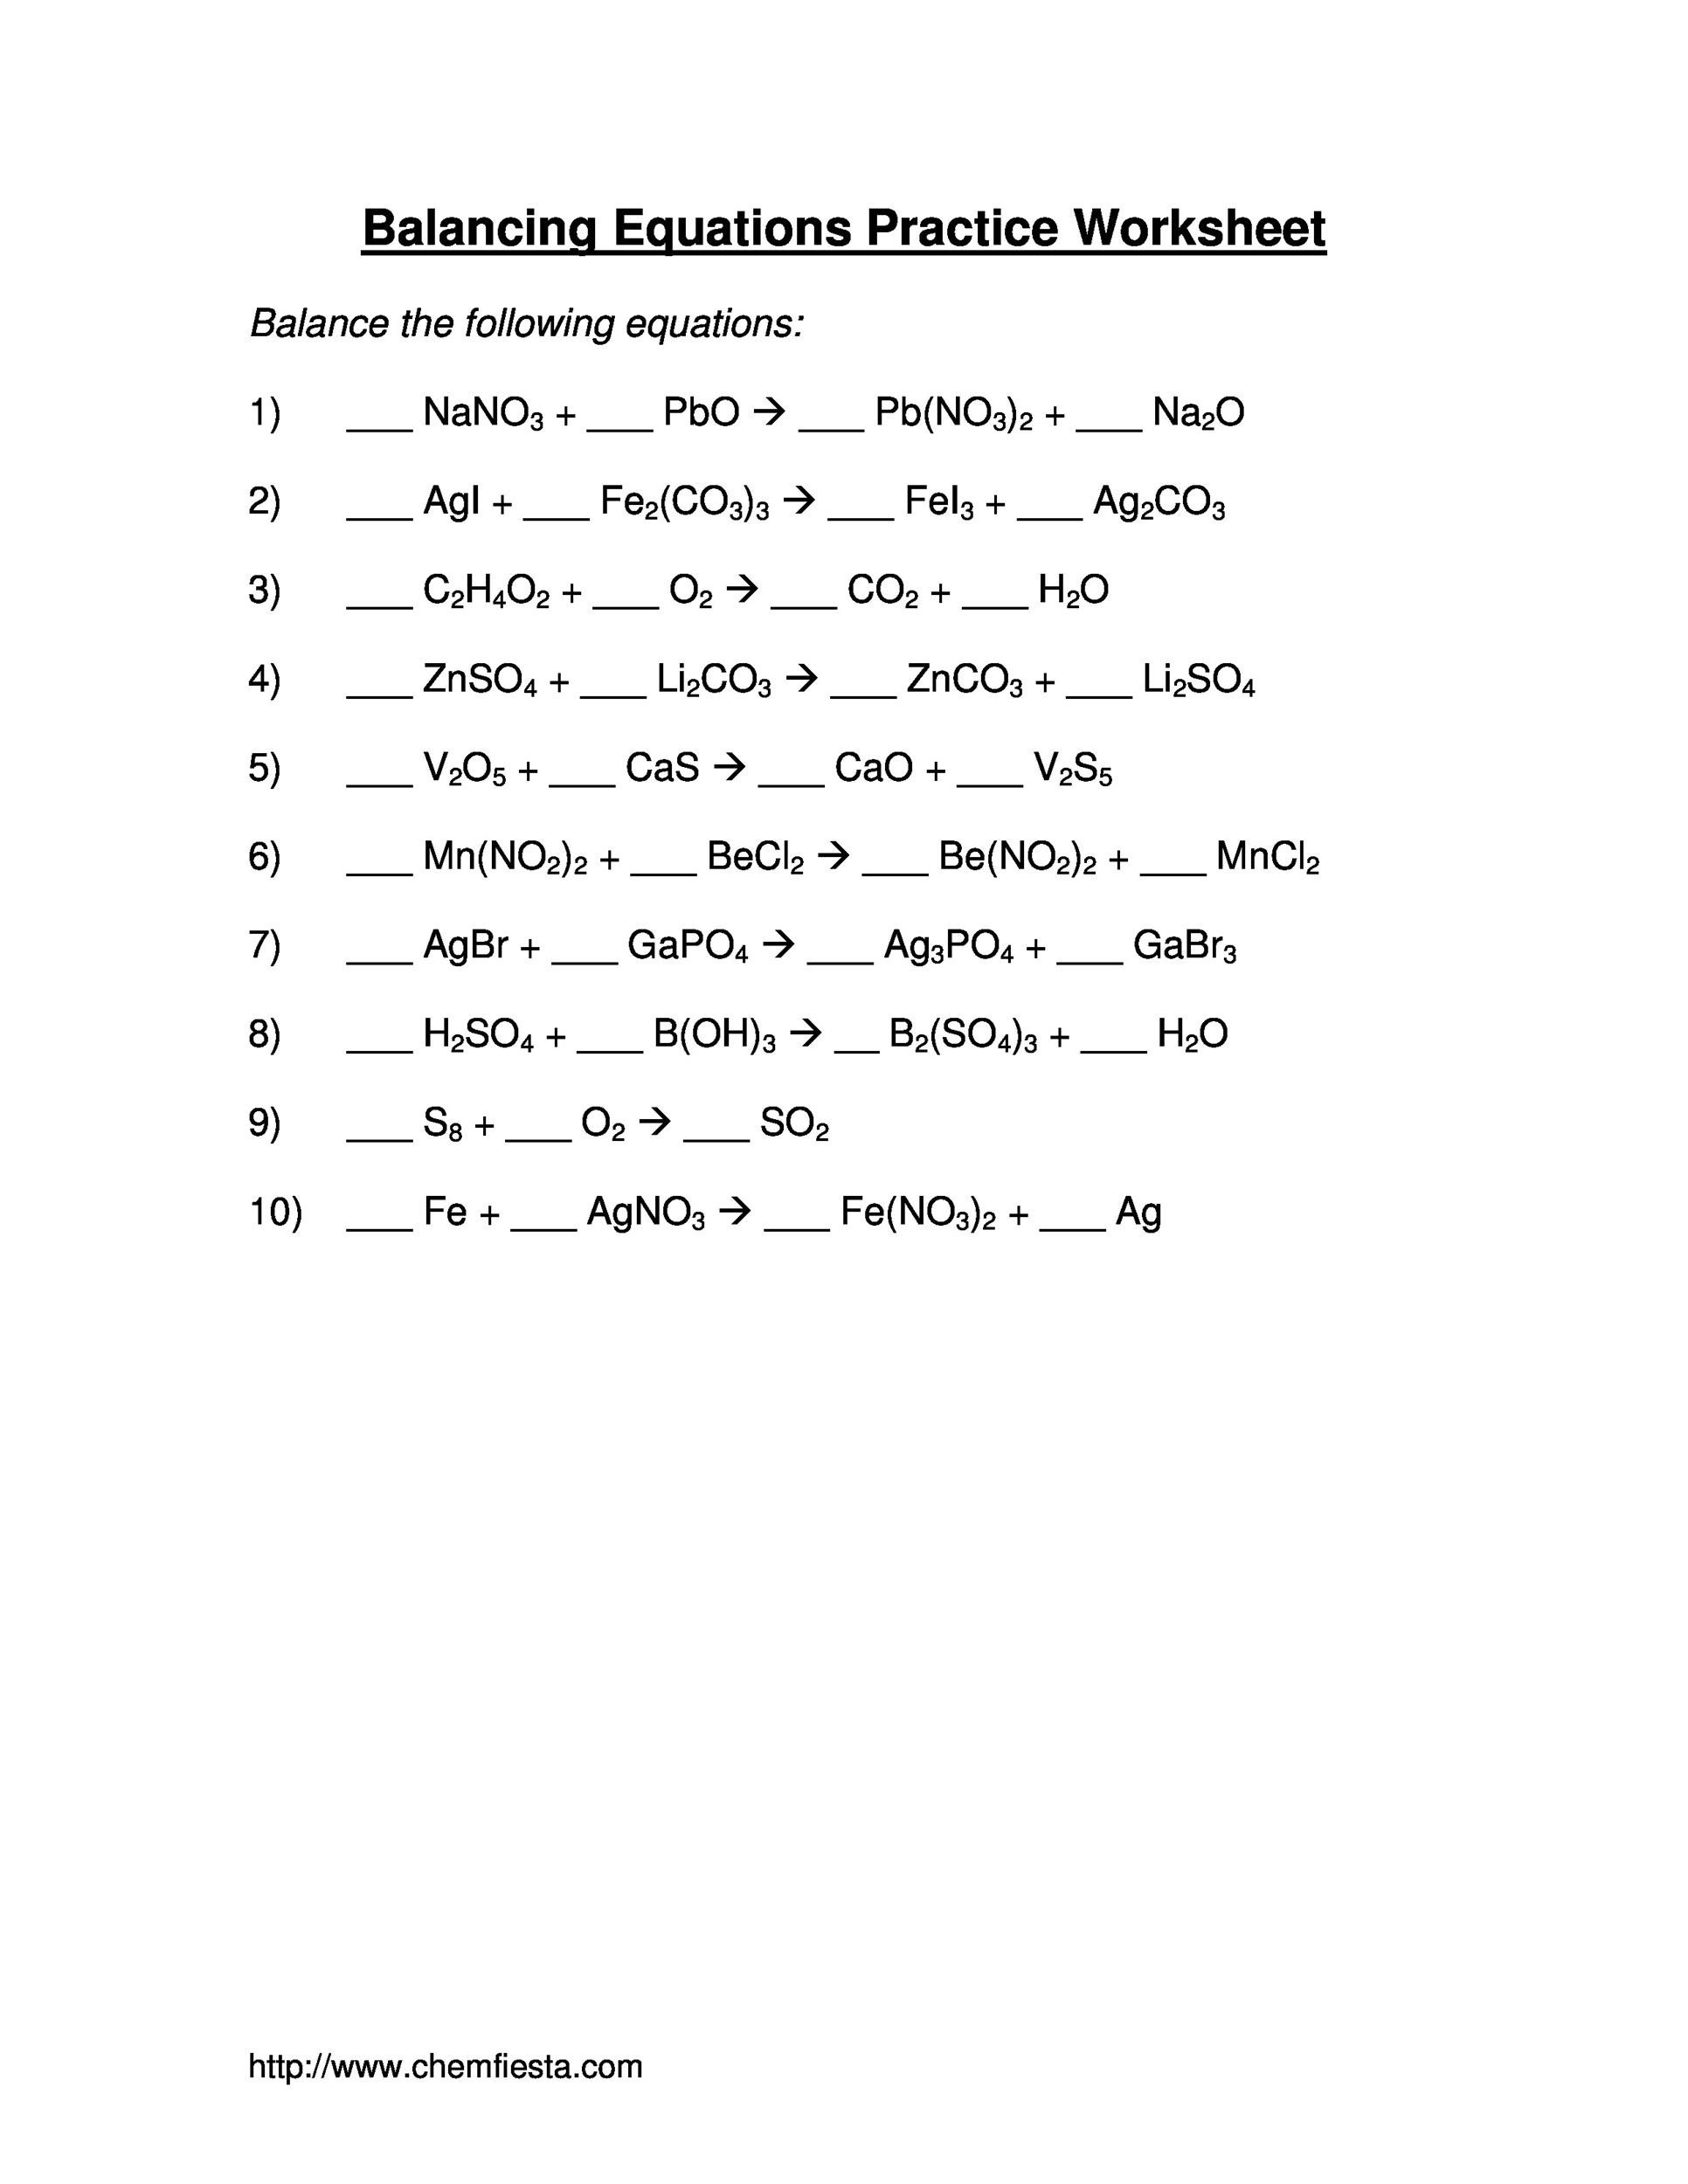 Balancing Equation Practice Worksheet Delibertad – Balancing Equations Worksheet Answers